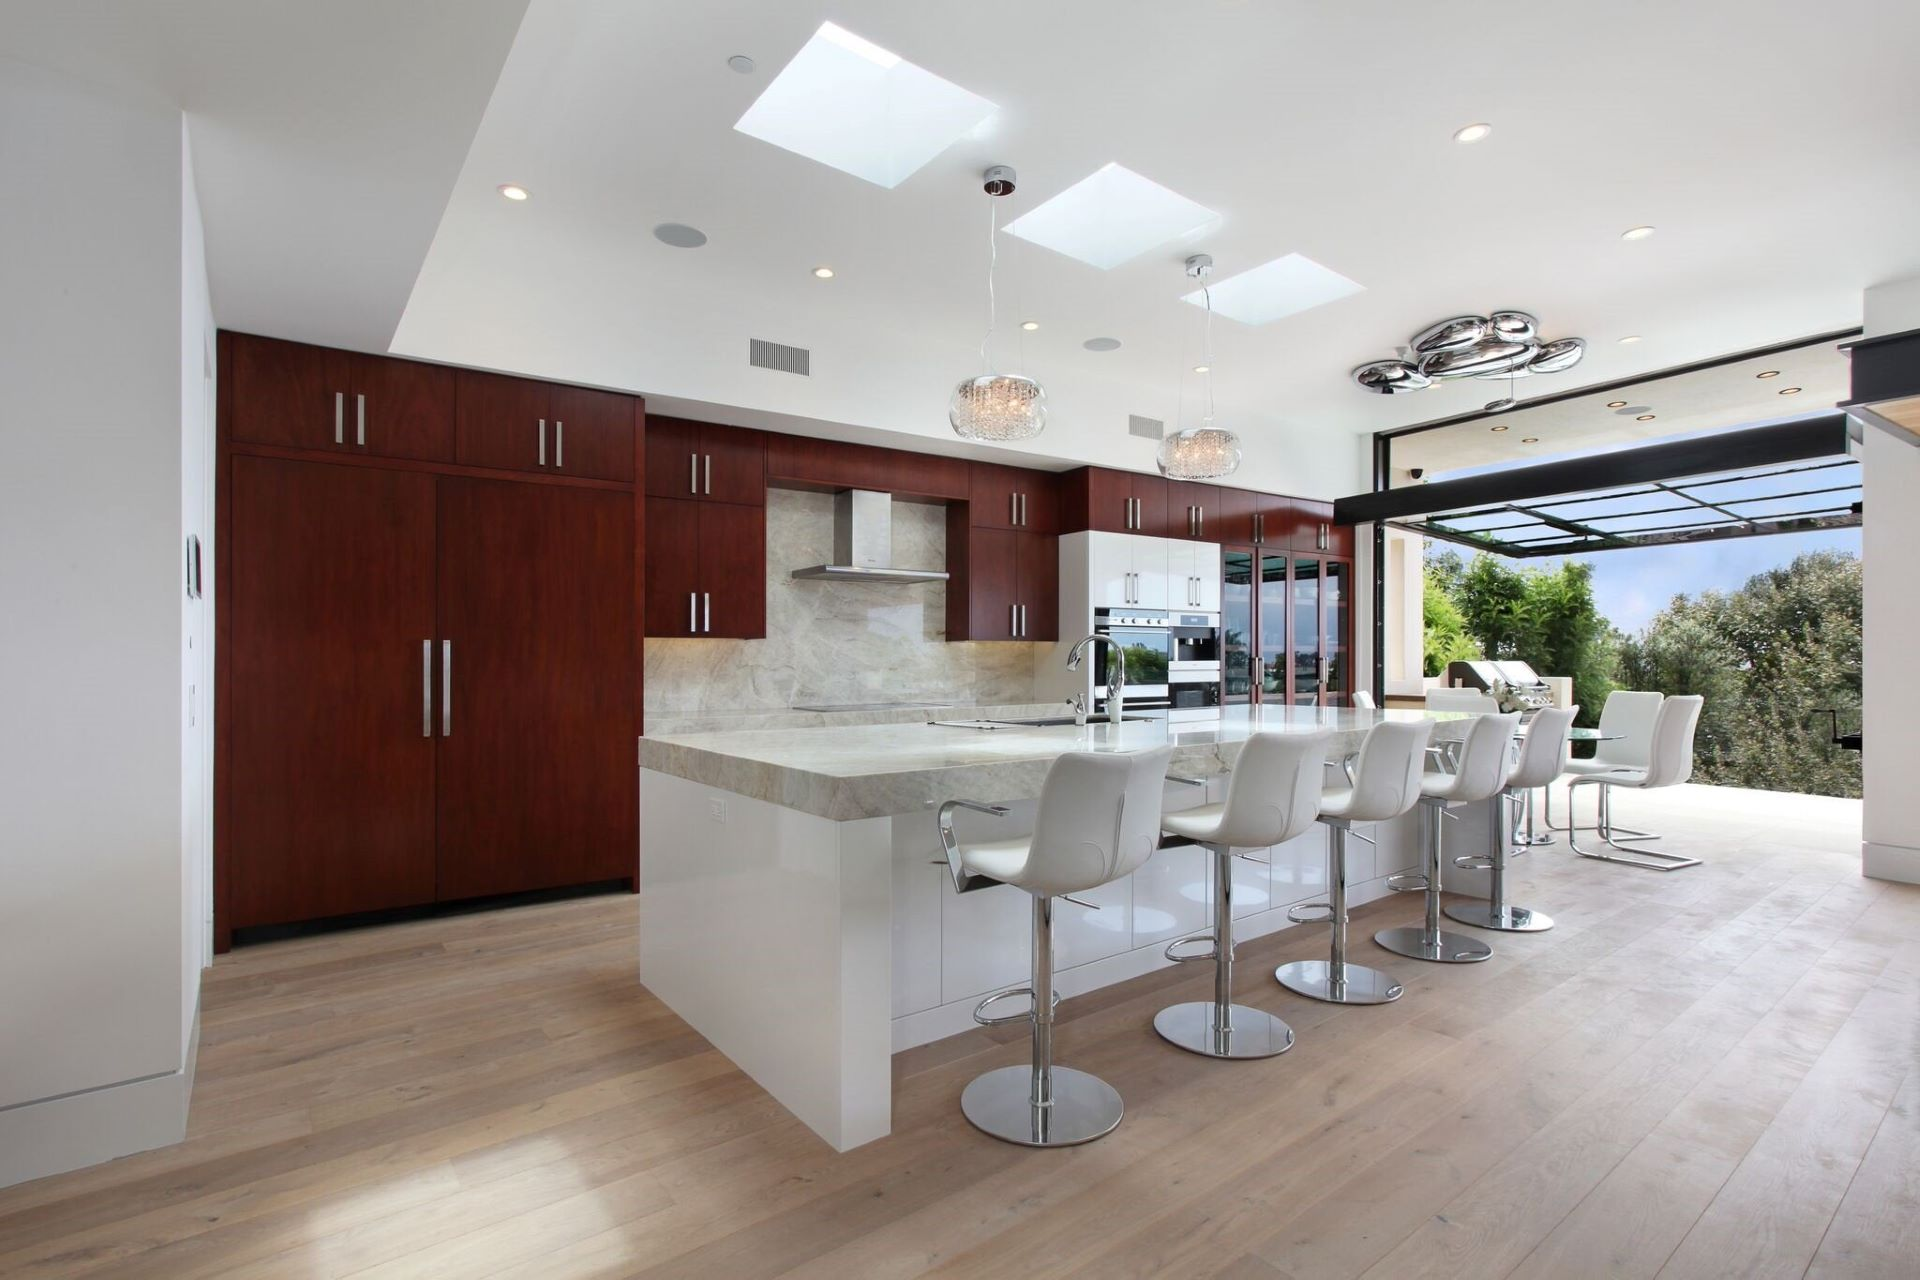 Combination of natural and artificial lighting gives a brightly-lit Contemporary space